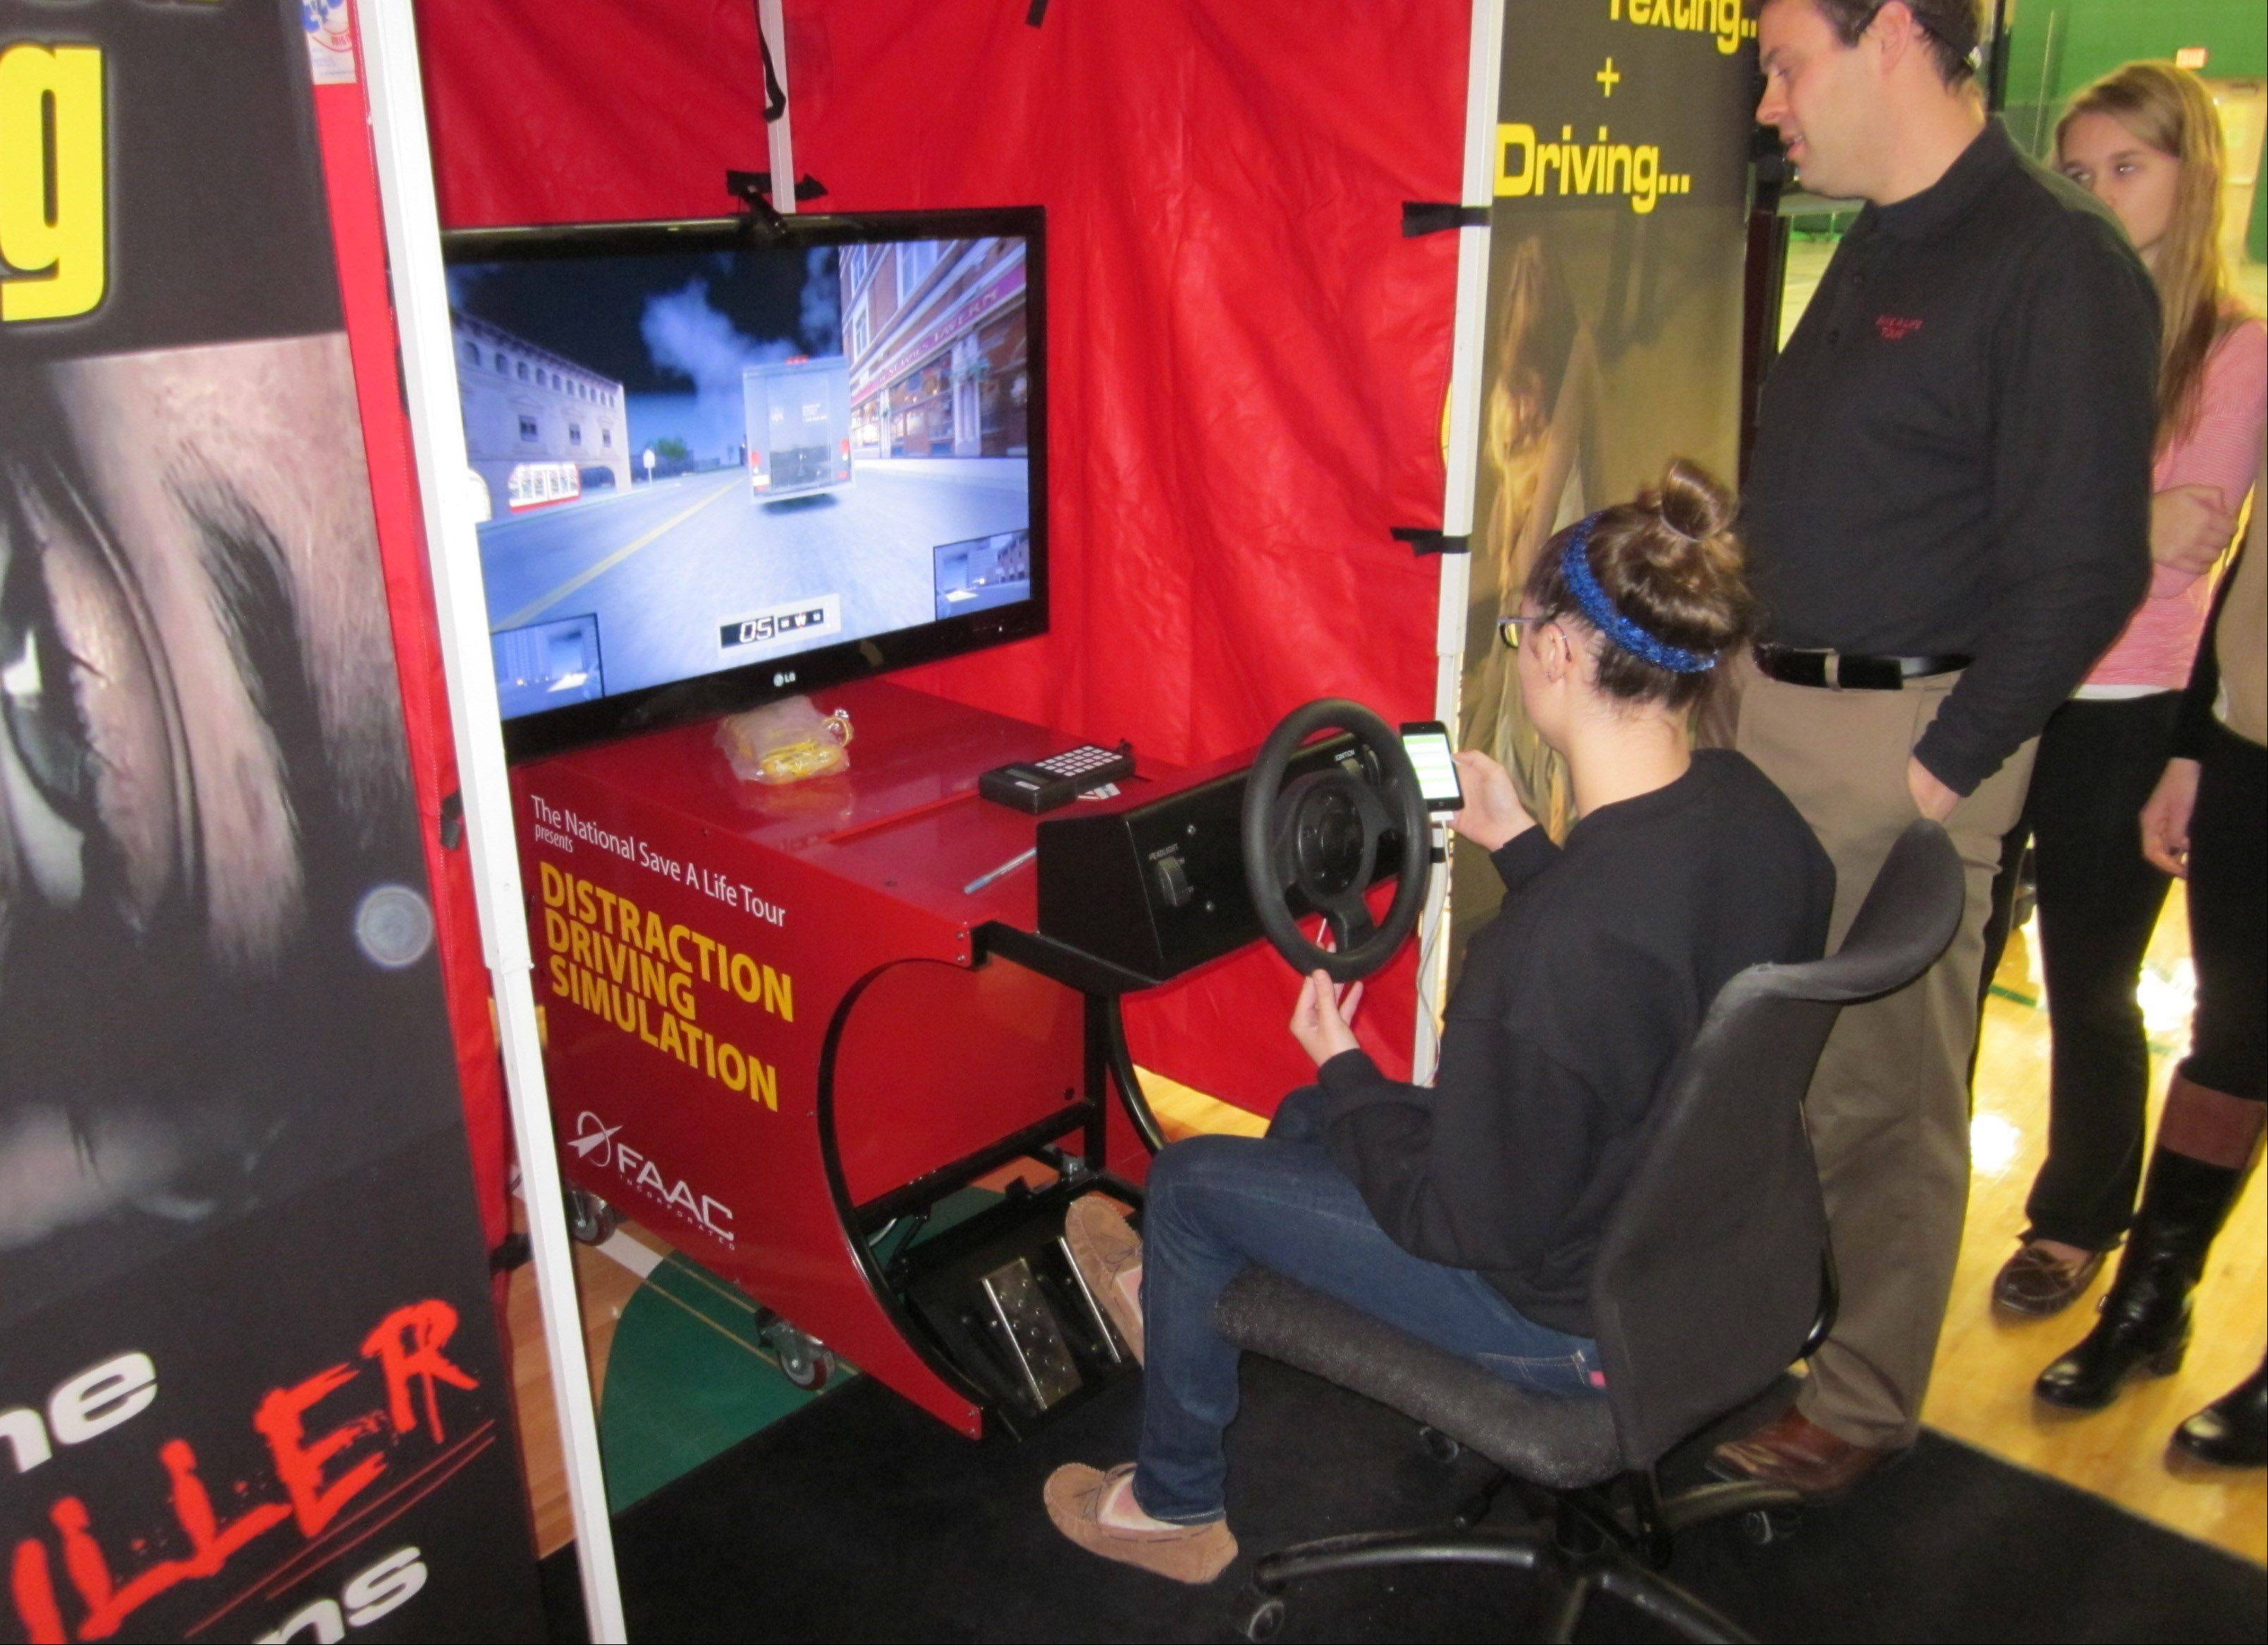 Grayslake Central High School junior Emma Eiserman, under supervision by Jonathan Saigeon, learns some lessons on a distracted driver simulator there Wednesday as part of a �Save a Life Tour� sponsored by Northwestern Lake Forest Hospital.